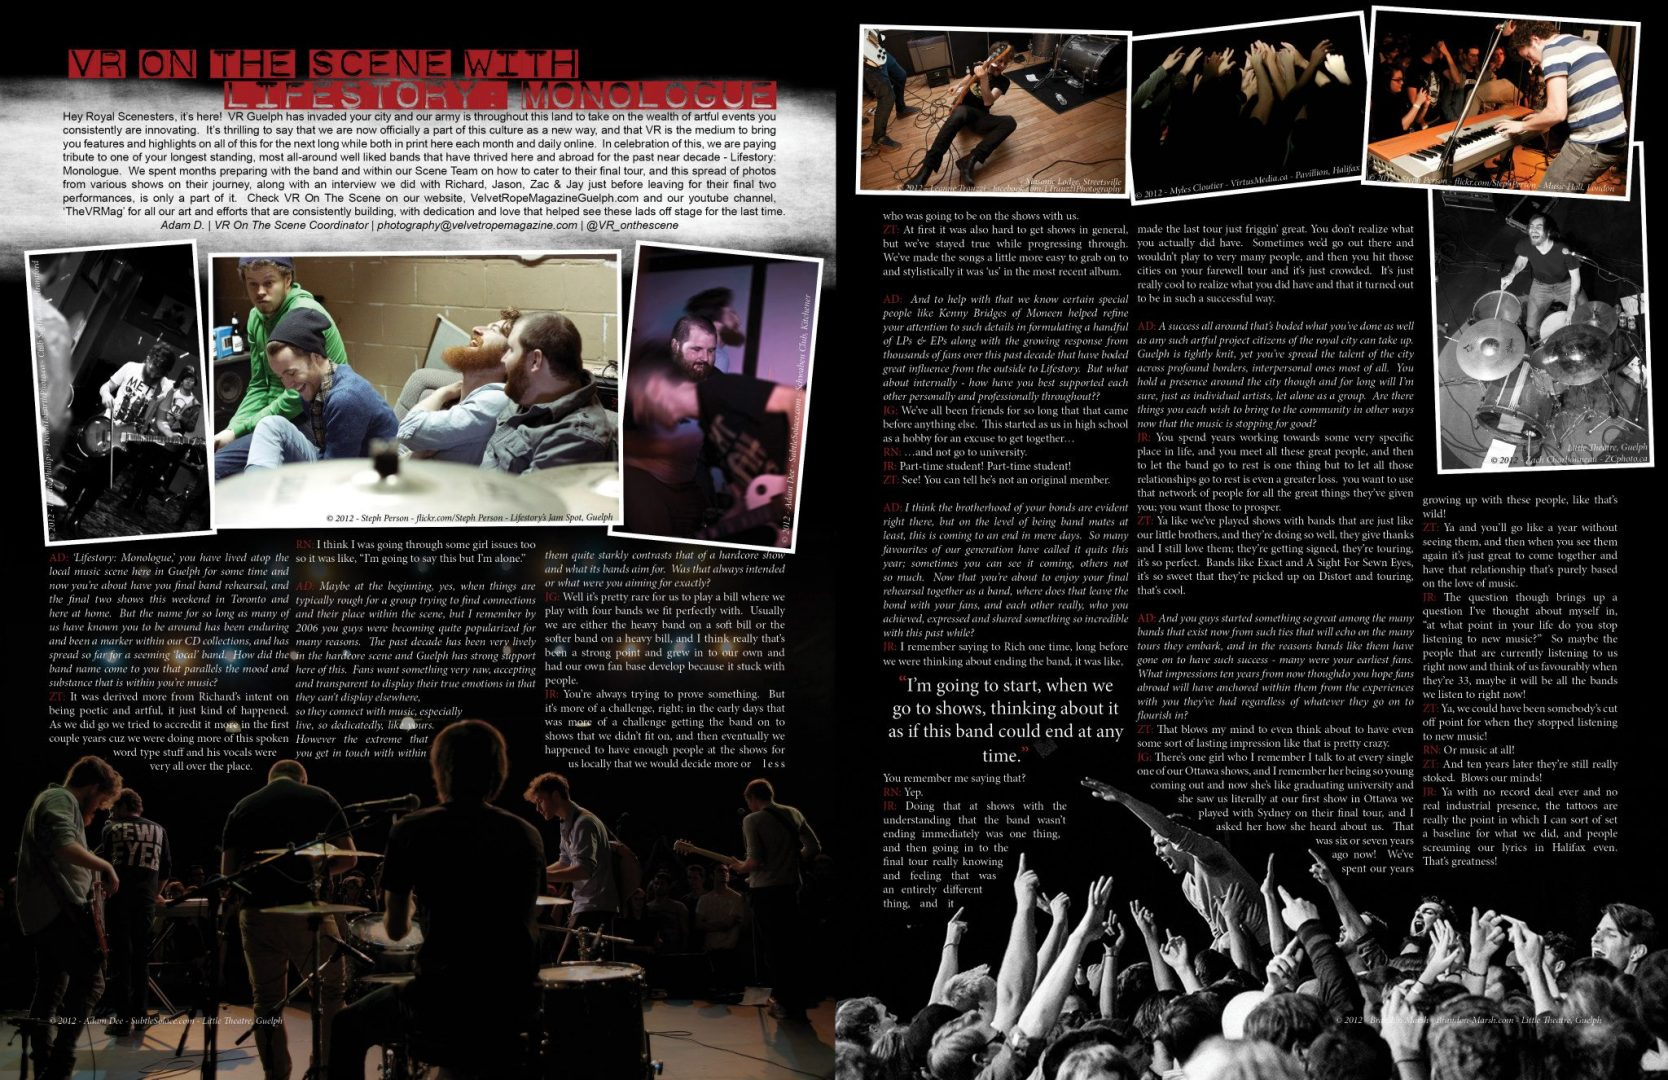 My first Publication. Image of Lifestory: Monologue in Bottom Right of the tear sheet.